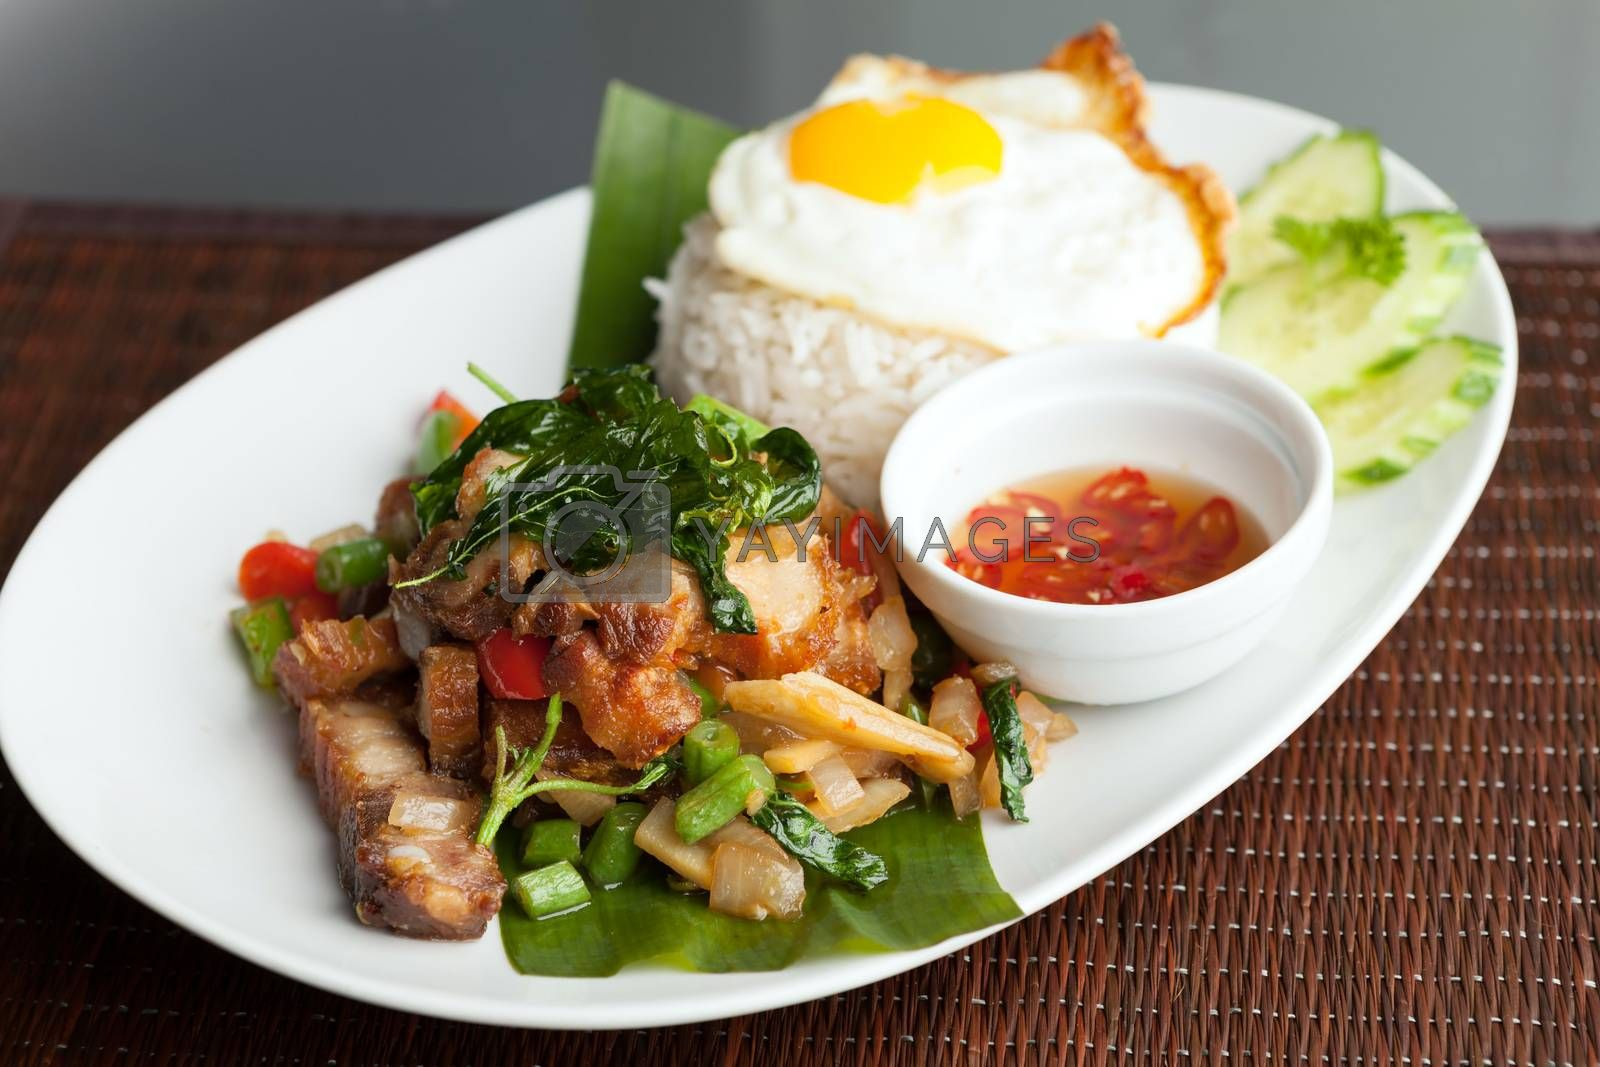 Traditional Thai dish crispy pork with a fried egg atop the jasmine rice served with chili sauce.